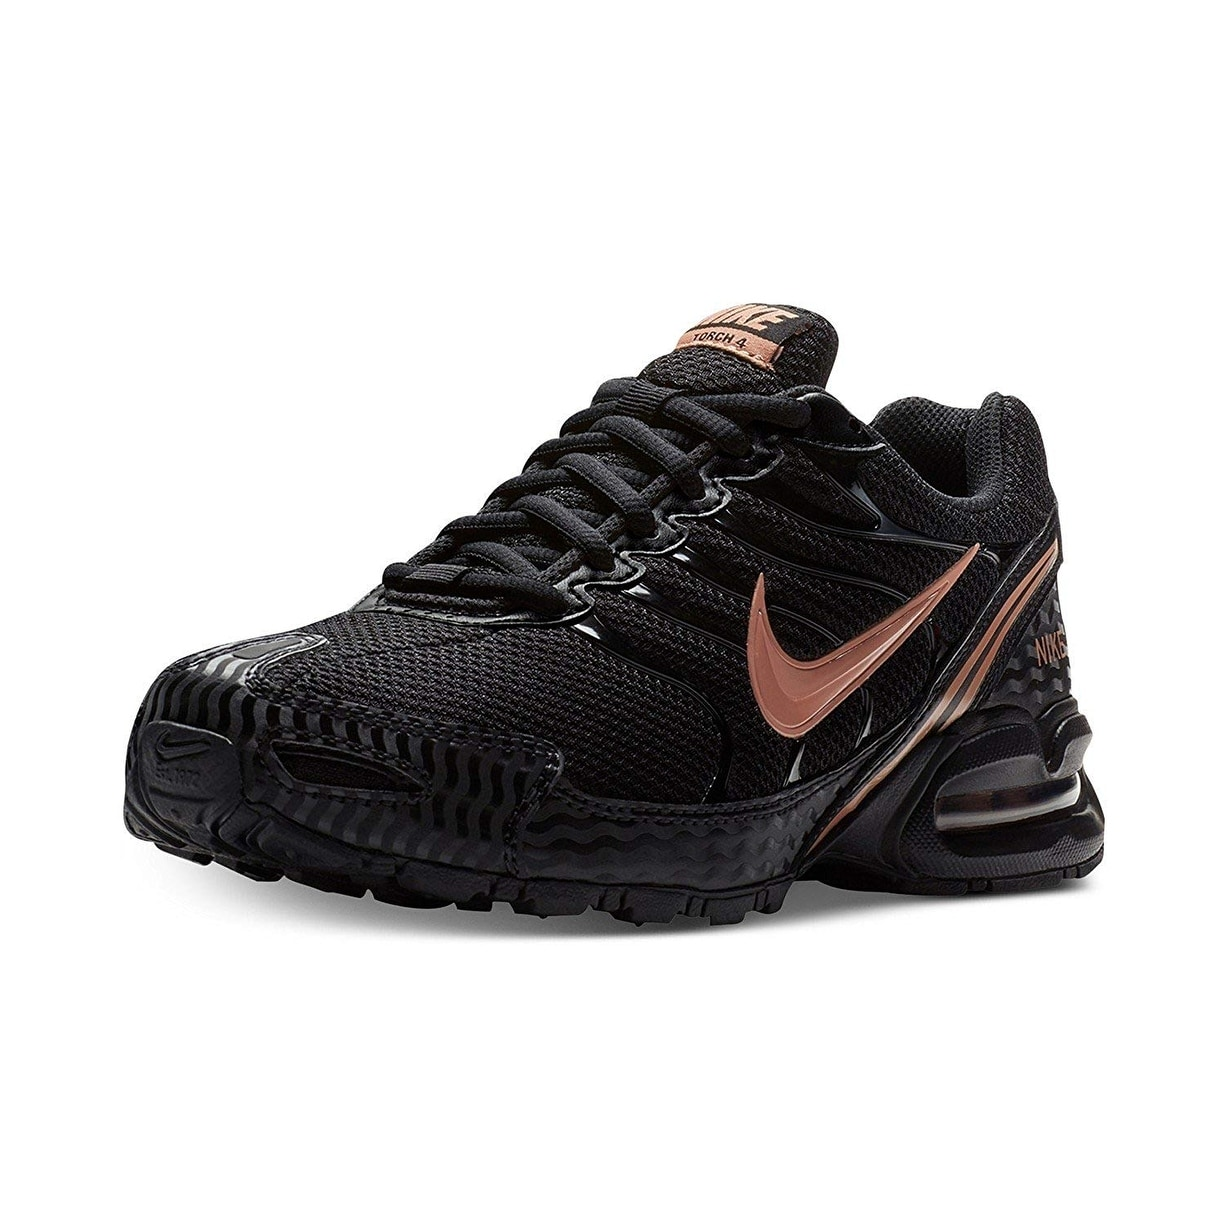 nike womens running shoes rose gold